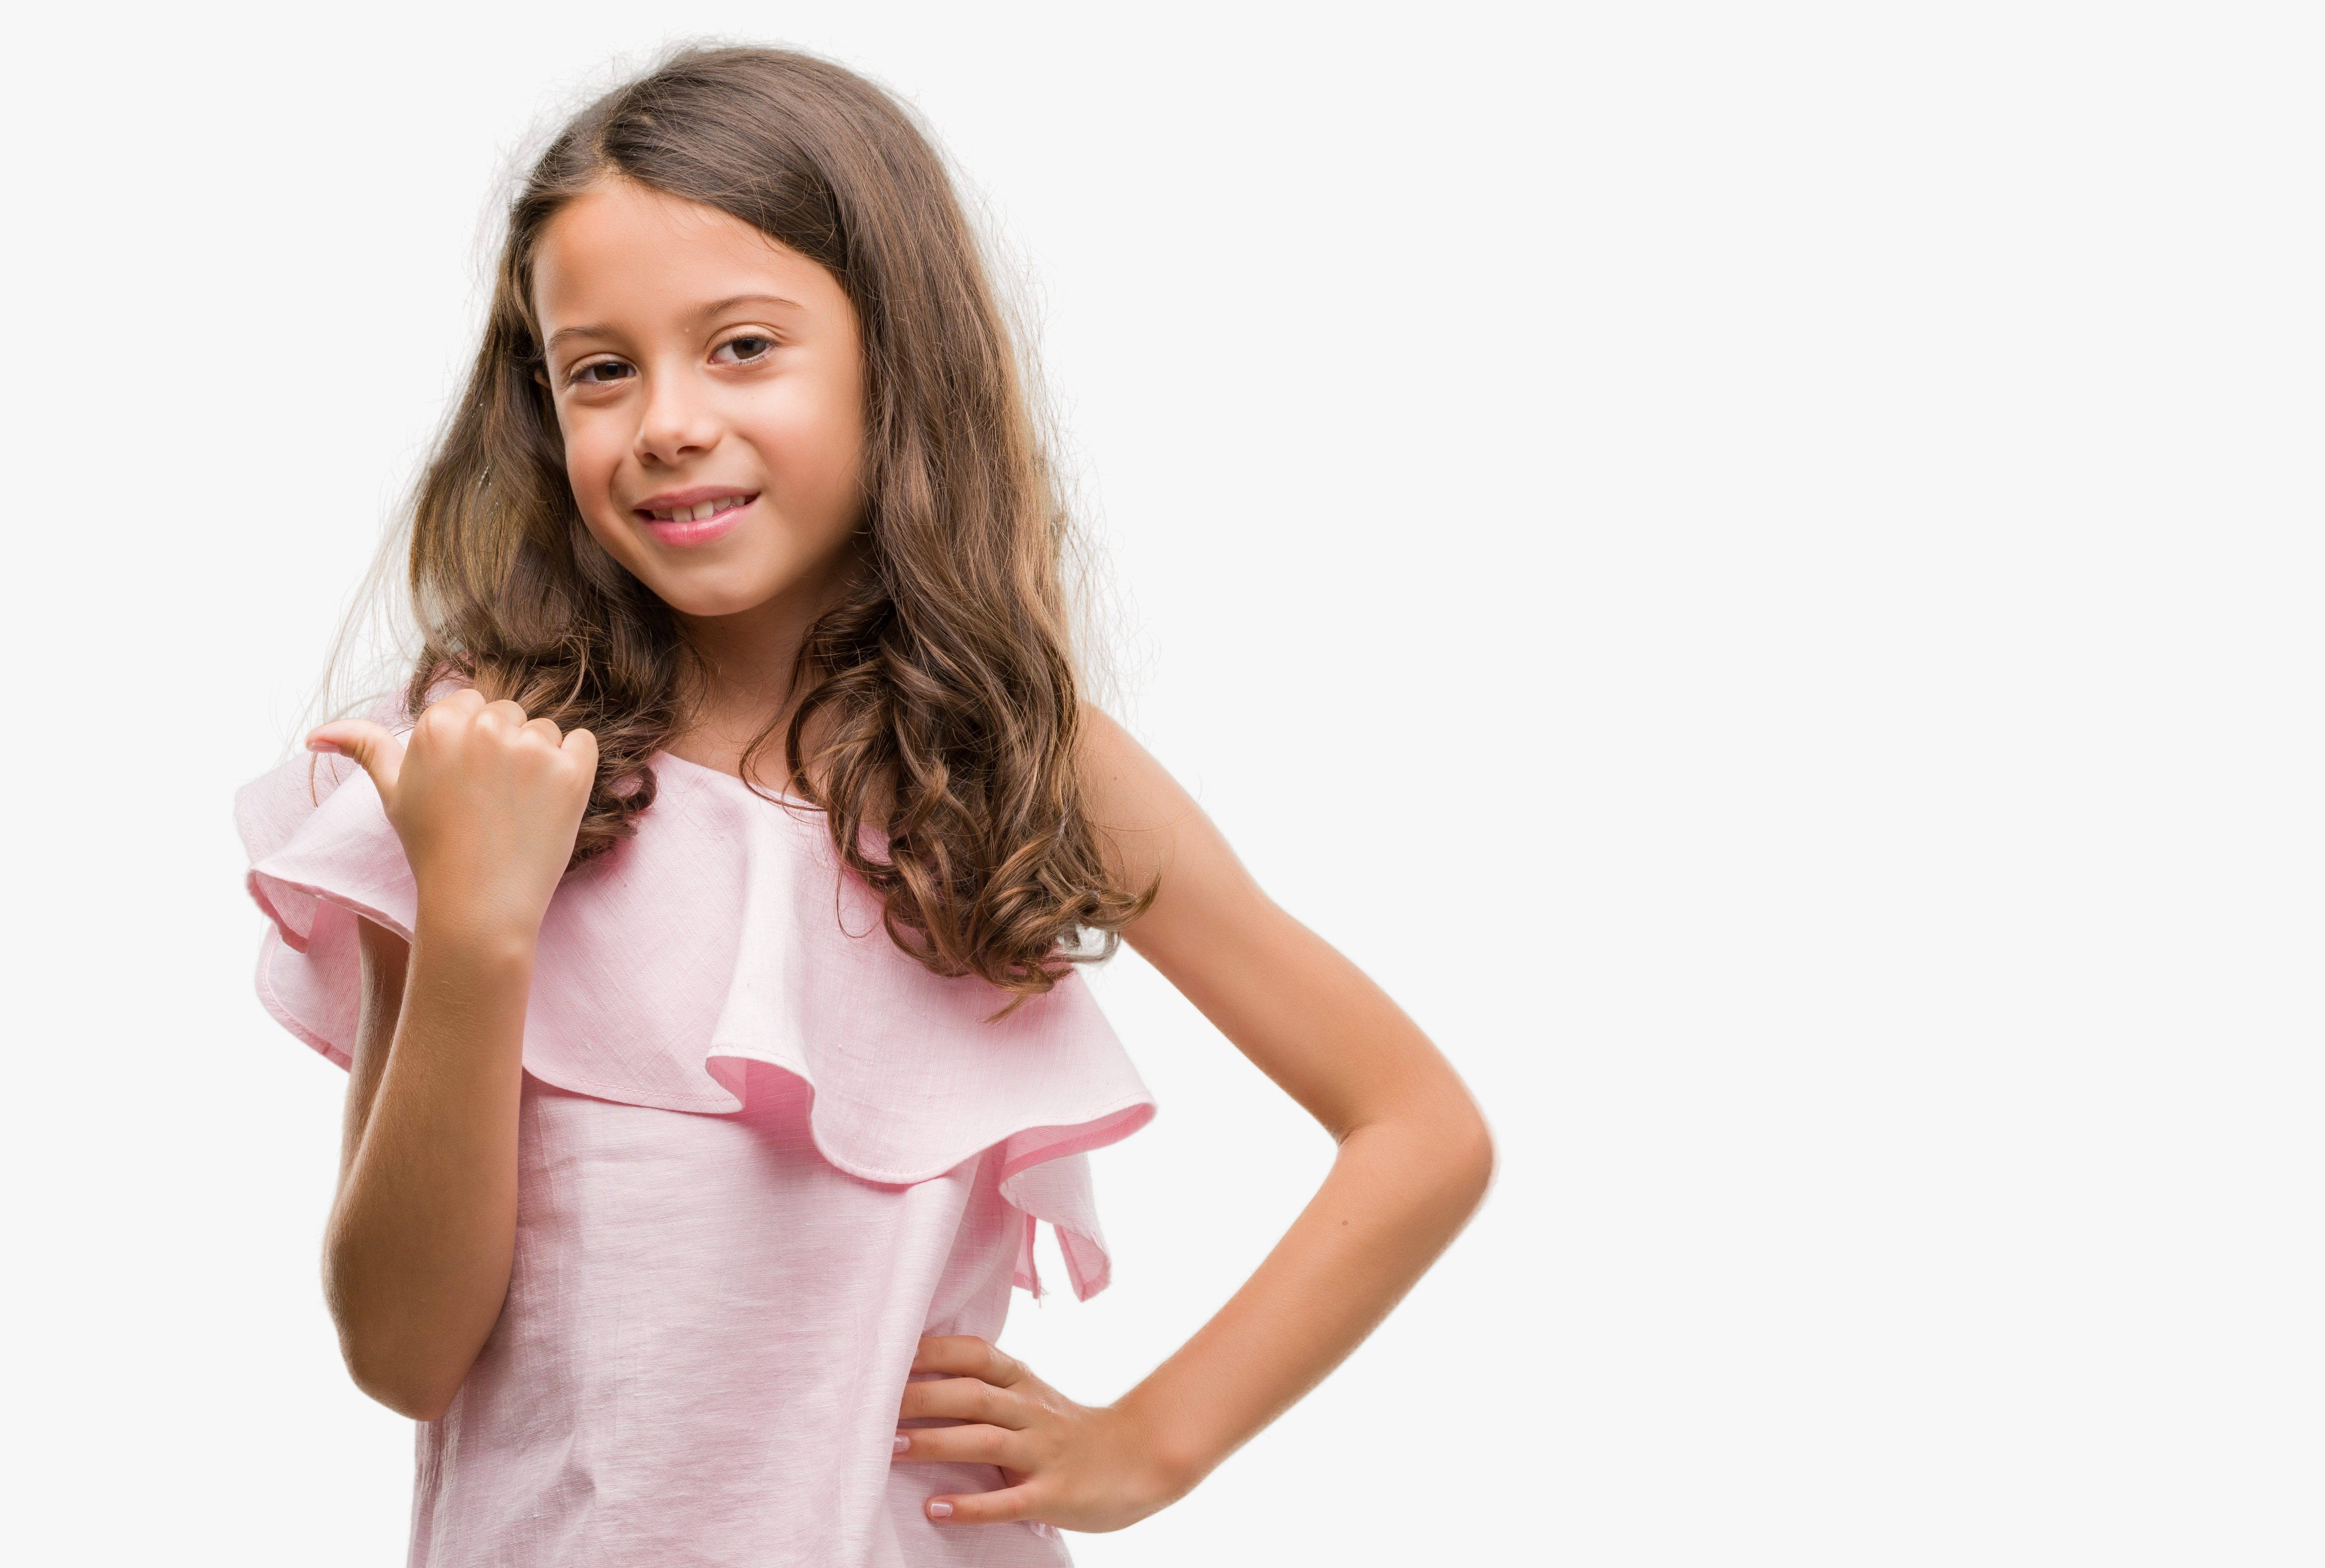 How to teach your child personal accountability